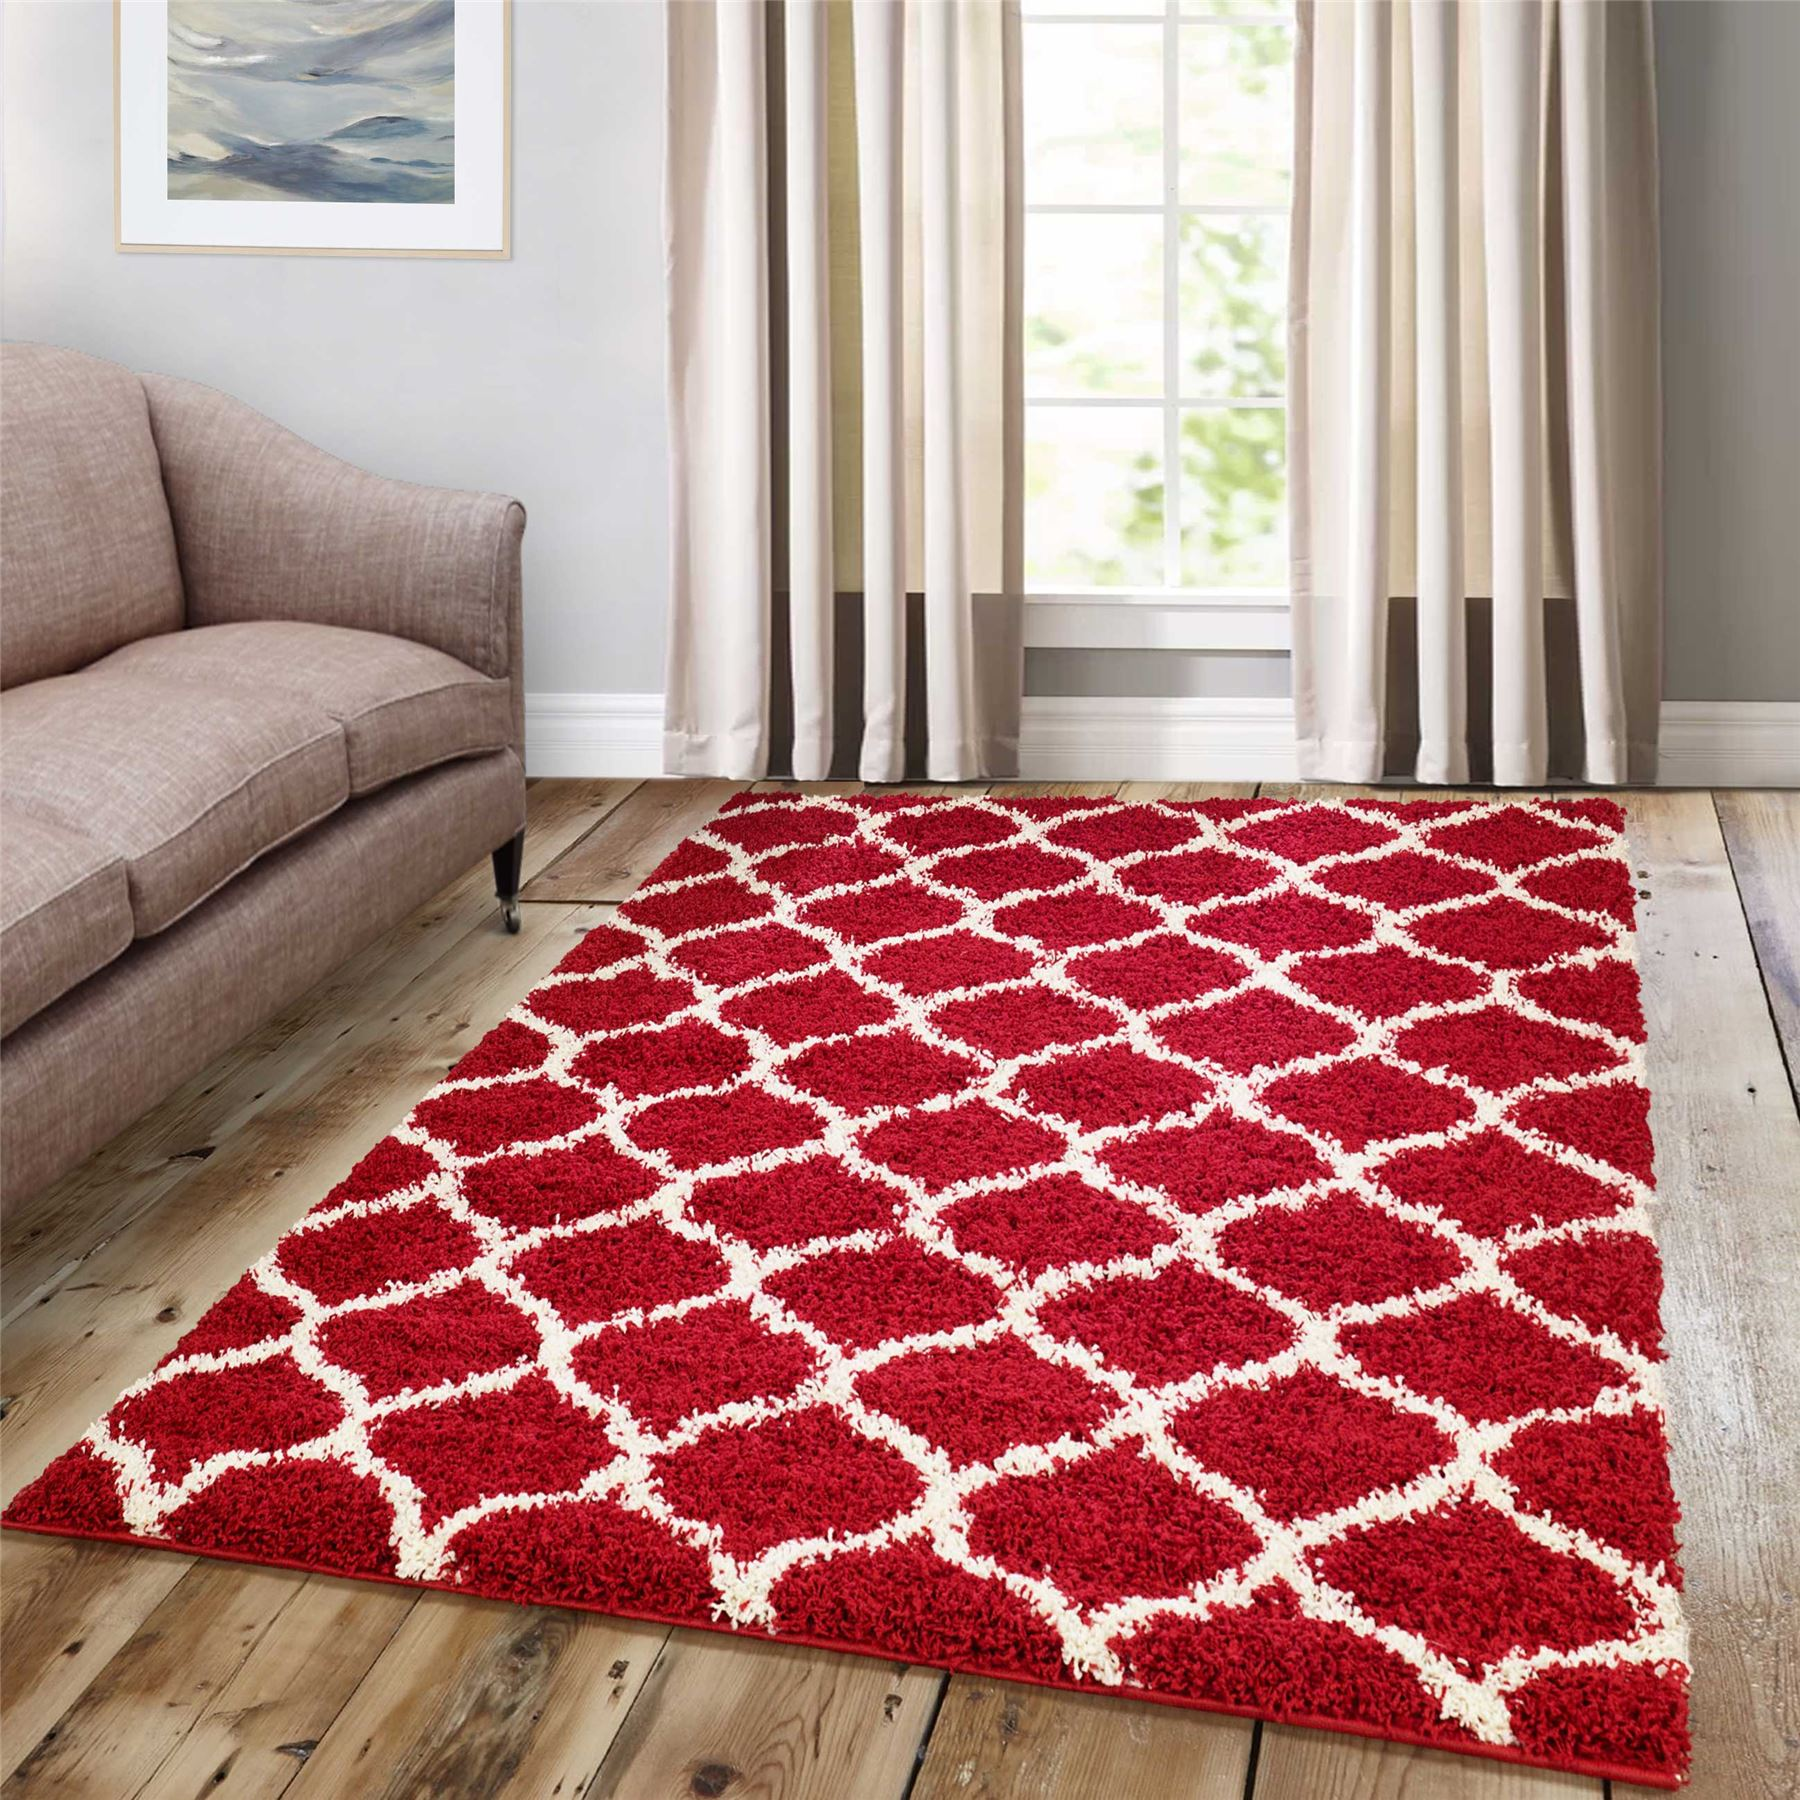 Dense-Pile-Trellis-Bedroom-Carpets-Thick-Shaggy-Rugs-Modern-Coloured-Pattern-Mat thumbnail 20